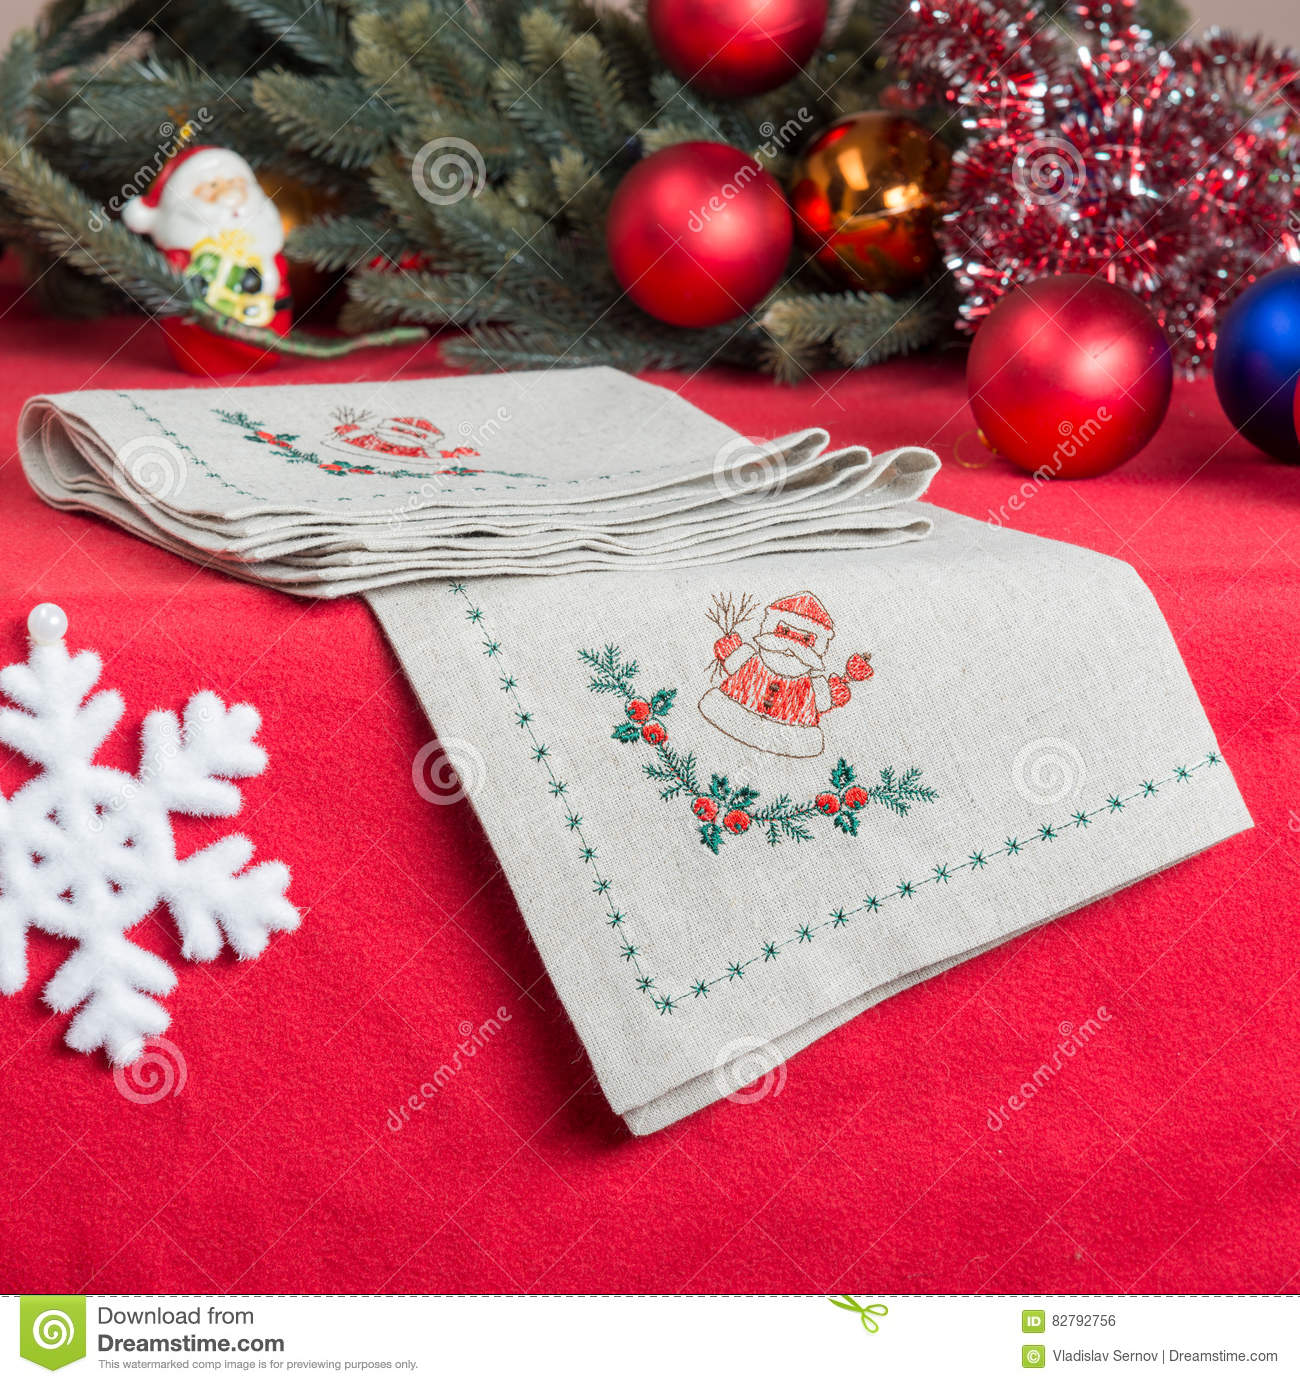 Napkins Embroidered With Santa Claus For Christmas Stock Photo Image Of Part Linen 82792756